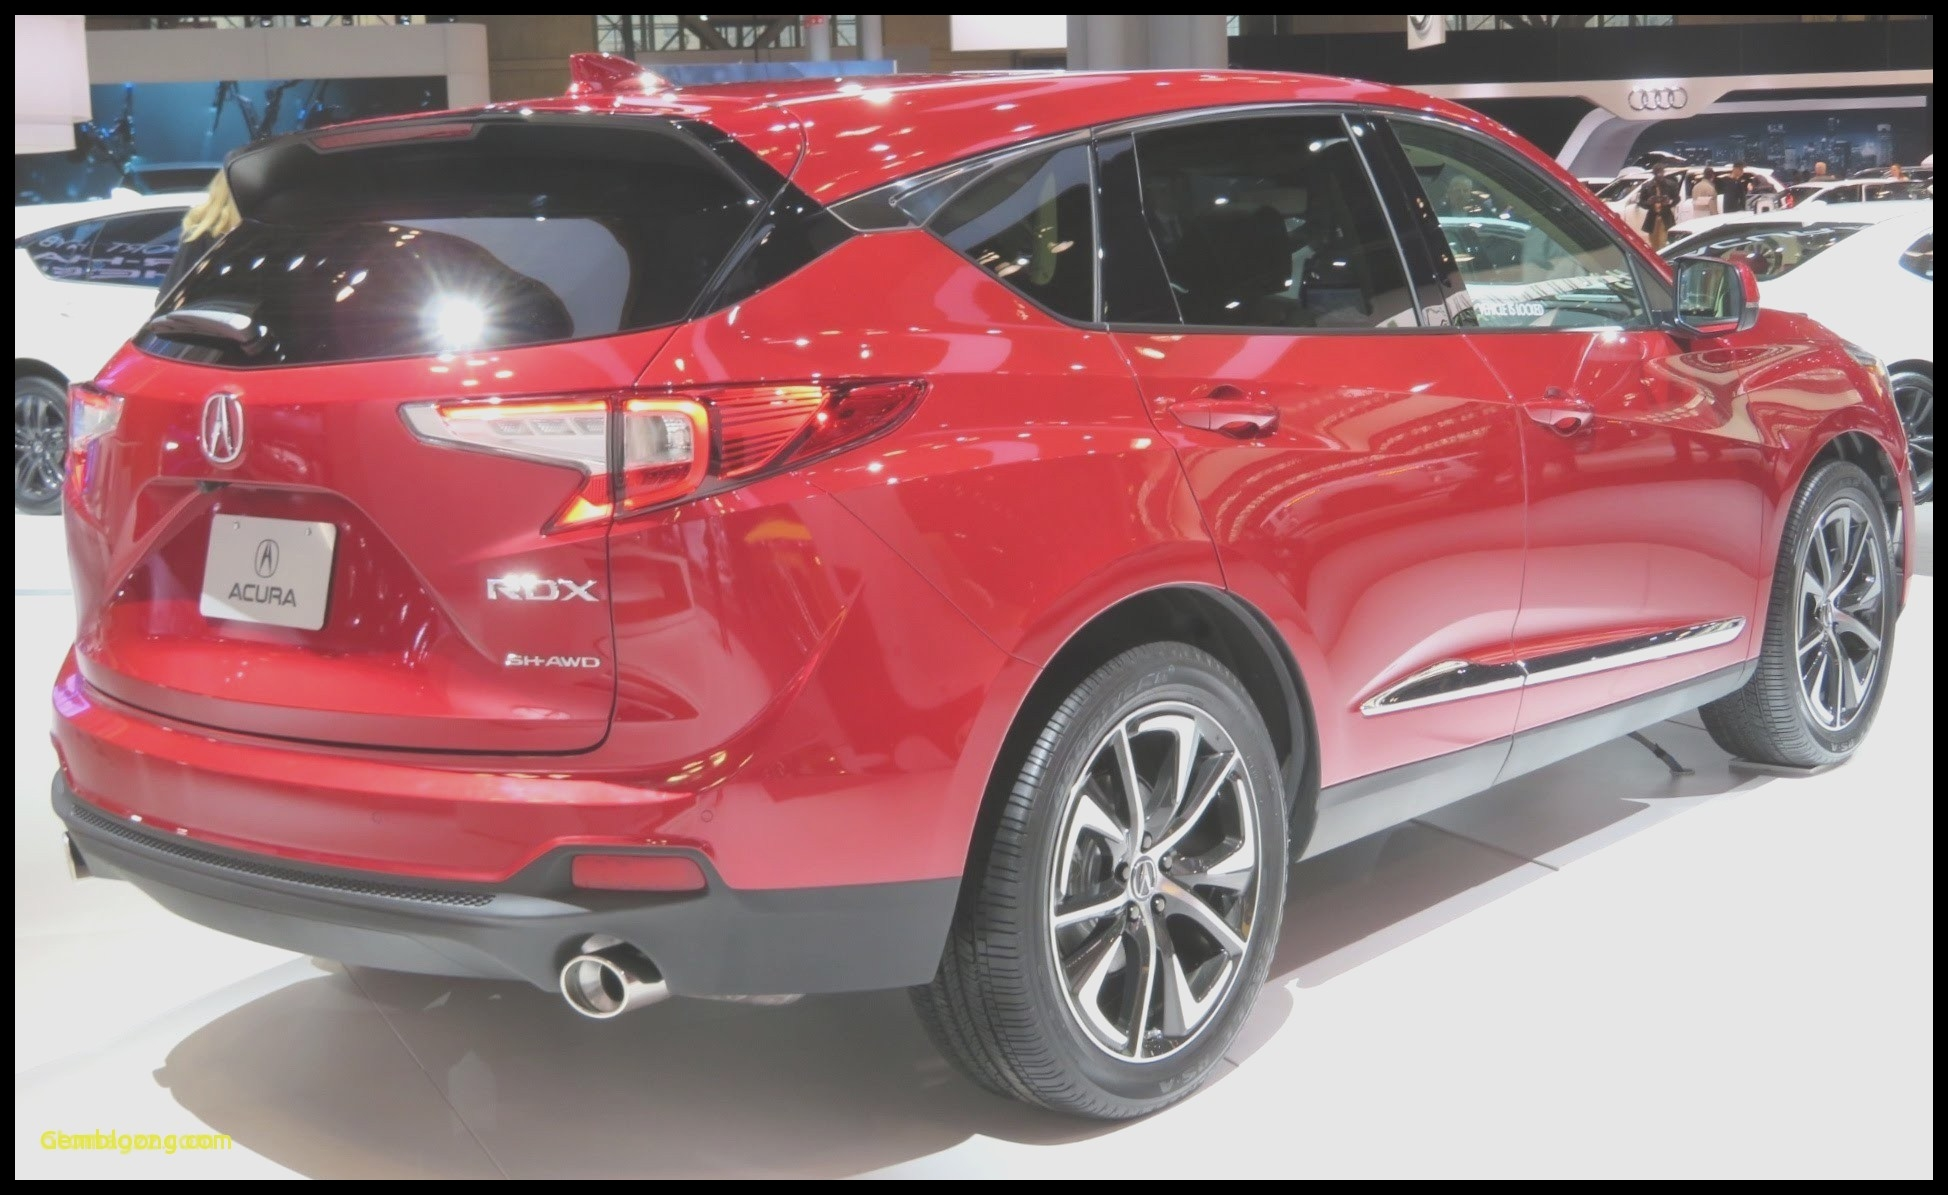 2019 Acura Tl Acura Tl 2010 Best 2019 Acura Acura Tampa Best Bmw X5 3 0d